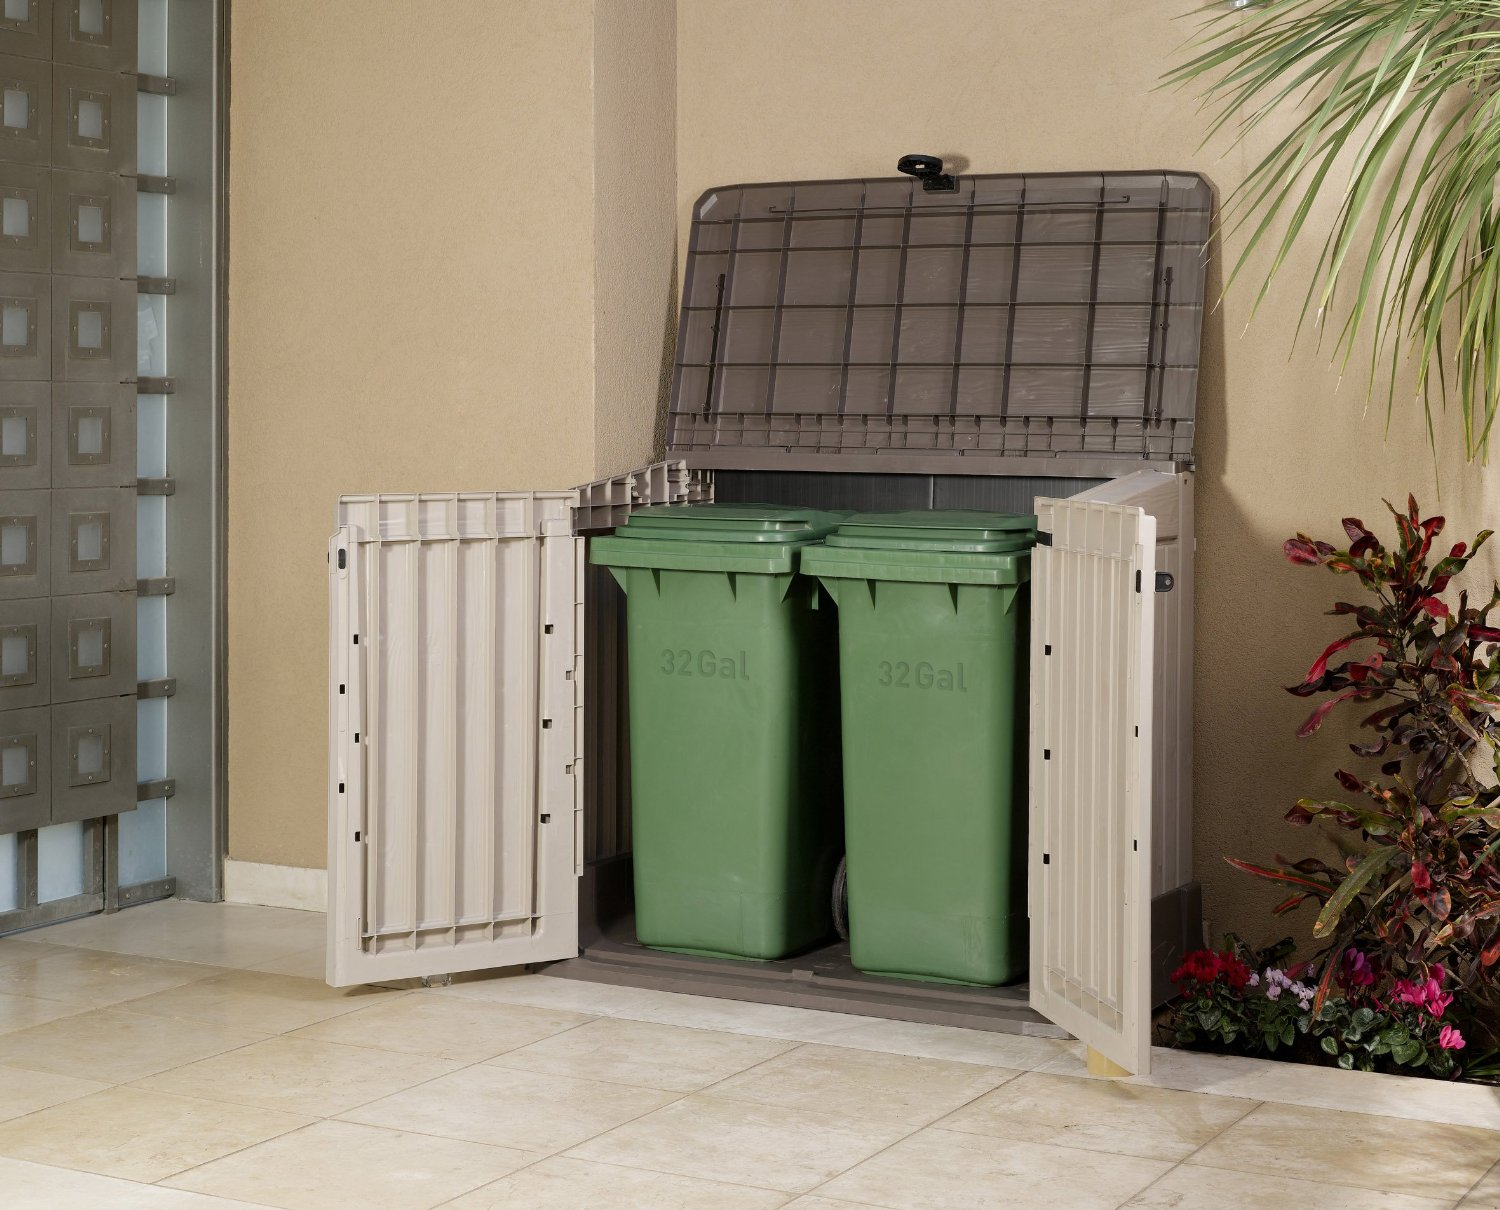 8x10 Storage Shed | Rubbermaid Sheds | Resin Storage Sheds